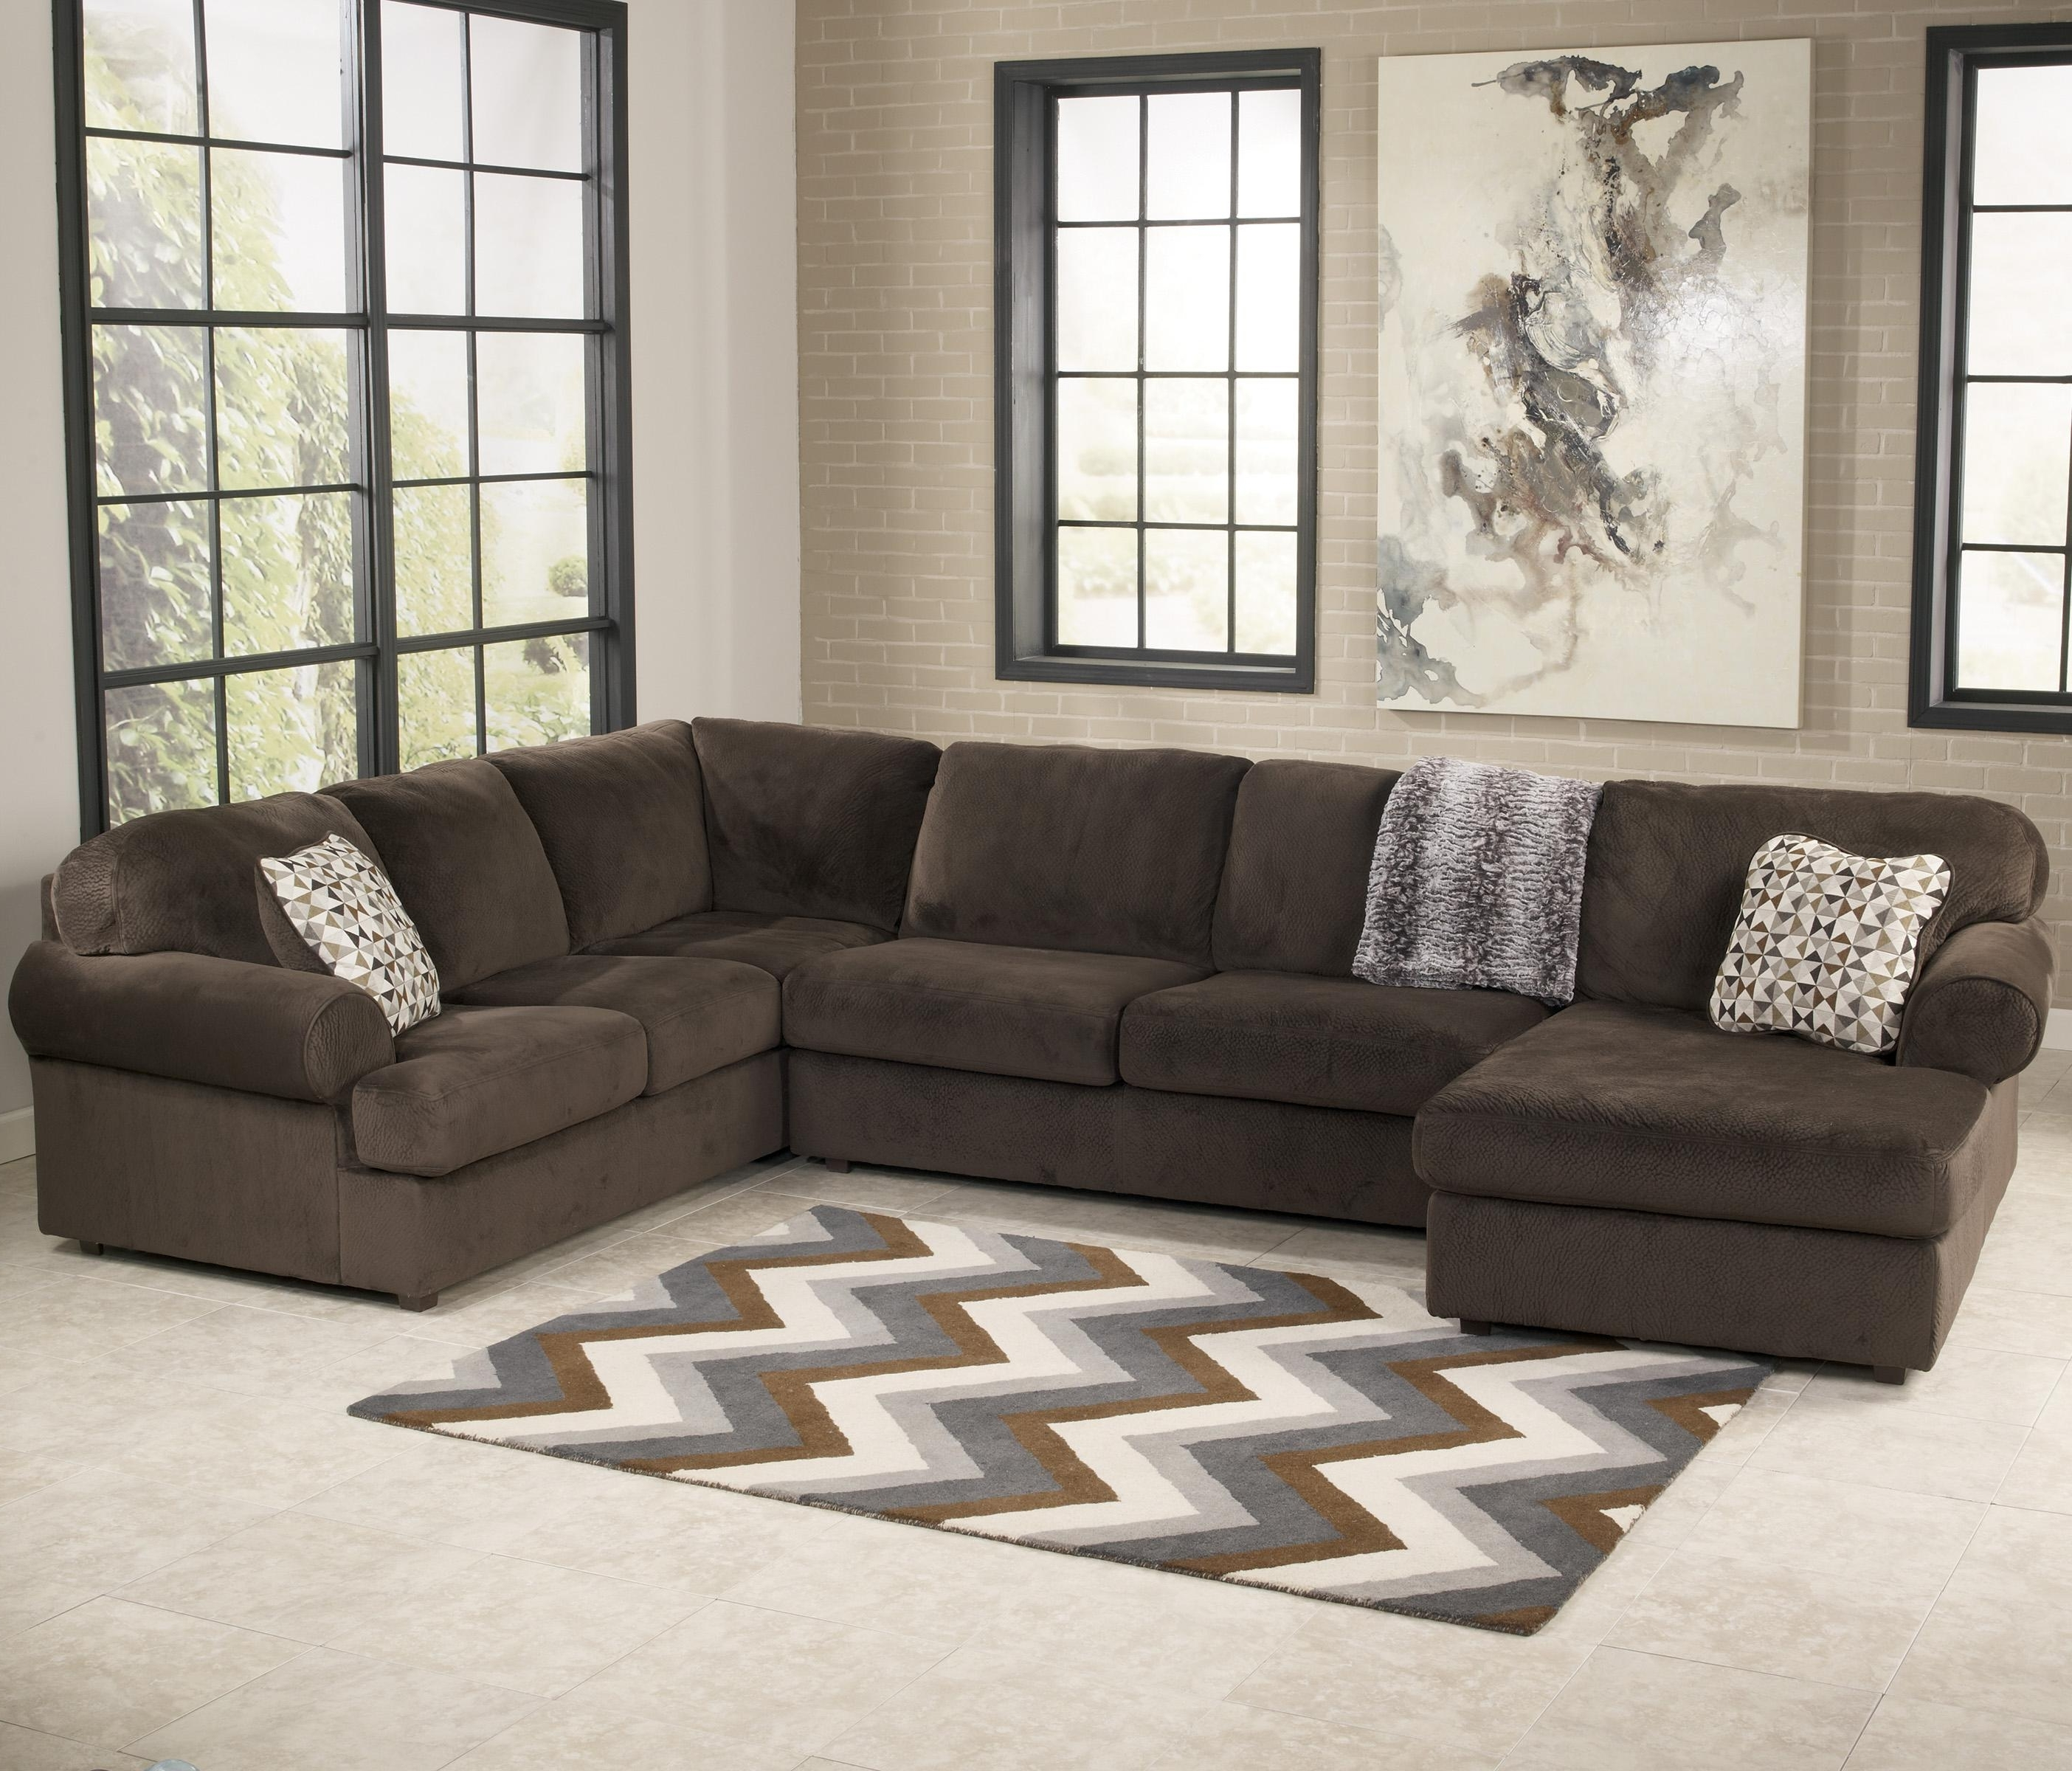 Signature Designashley Jessa Place – Chocolate Casual With Favorite Ashley Furniture Sectionals With Chaise (View 12 of 15)